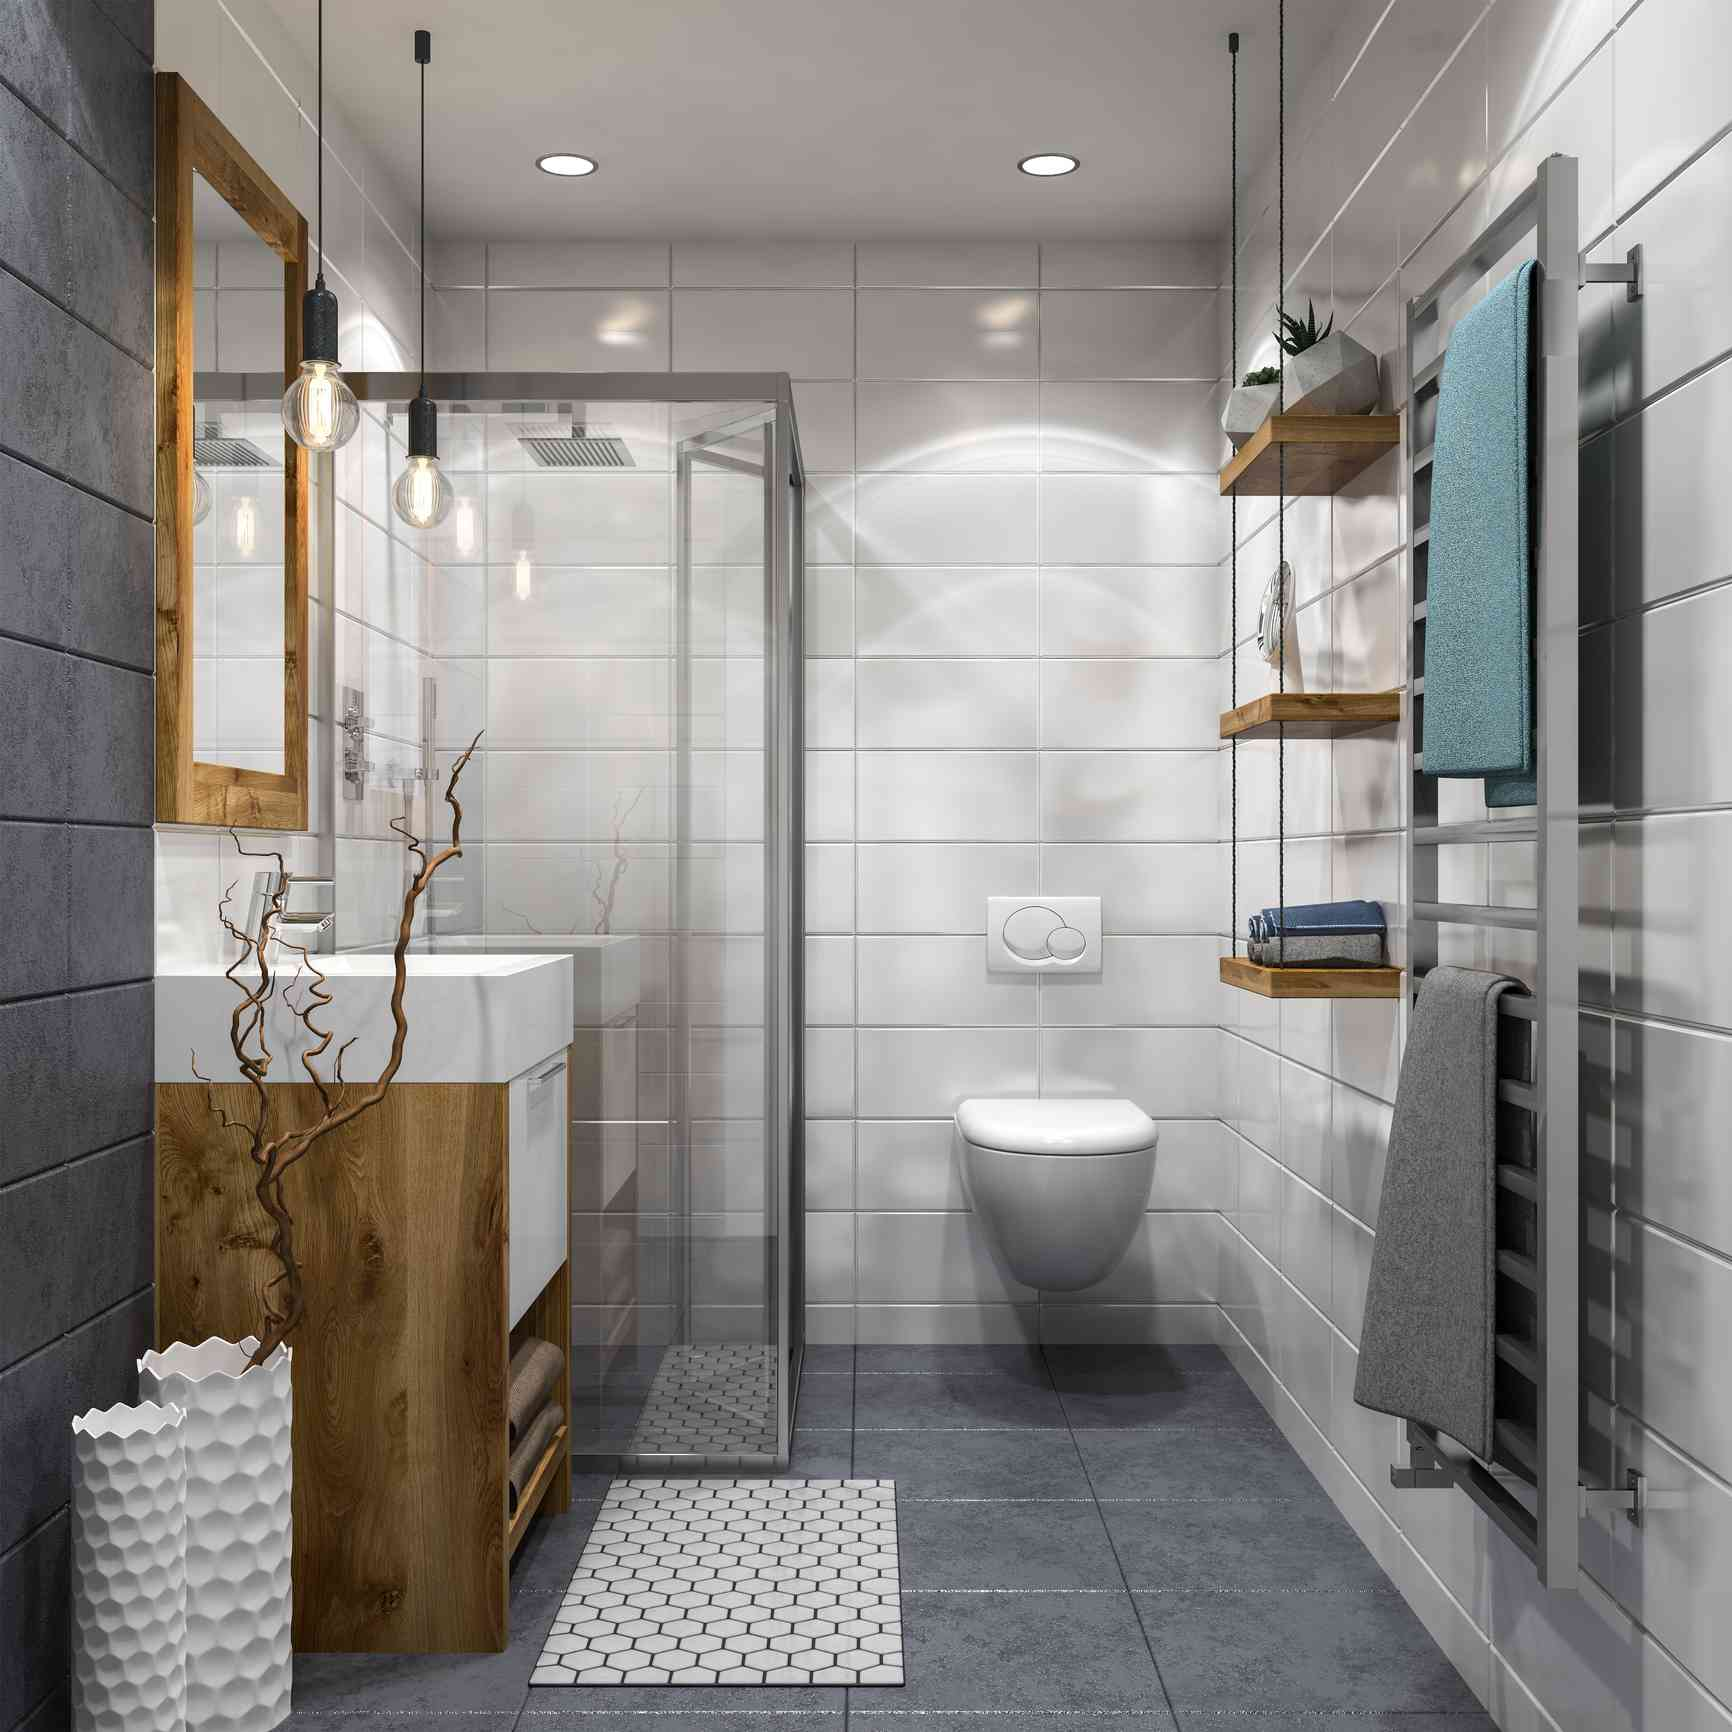 Industrial bathroom with wood touches